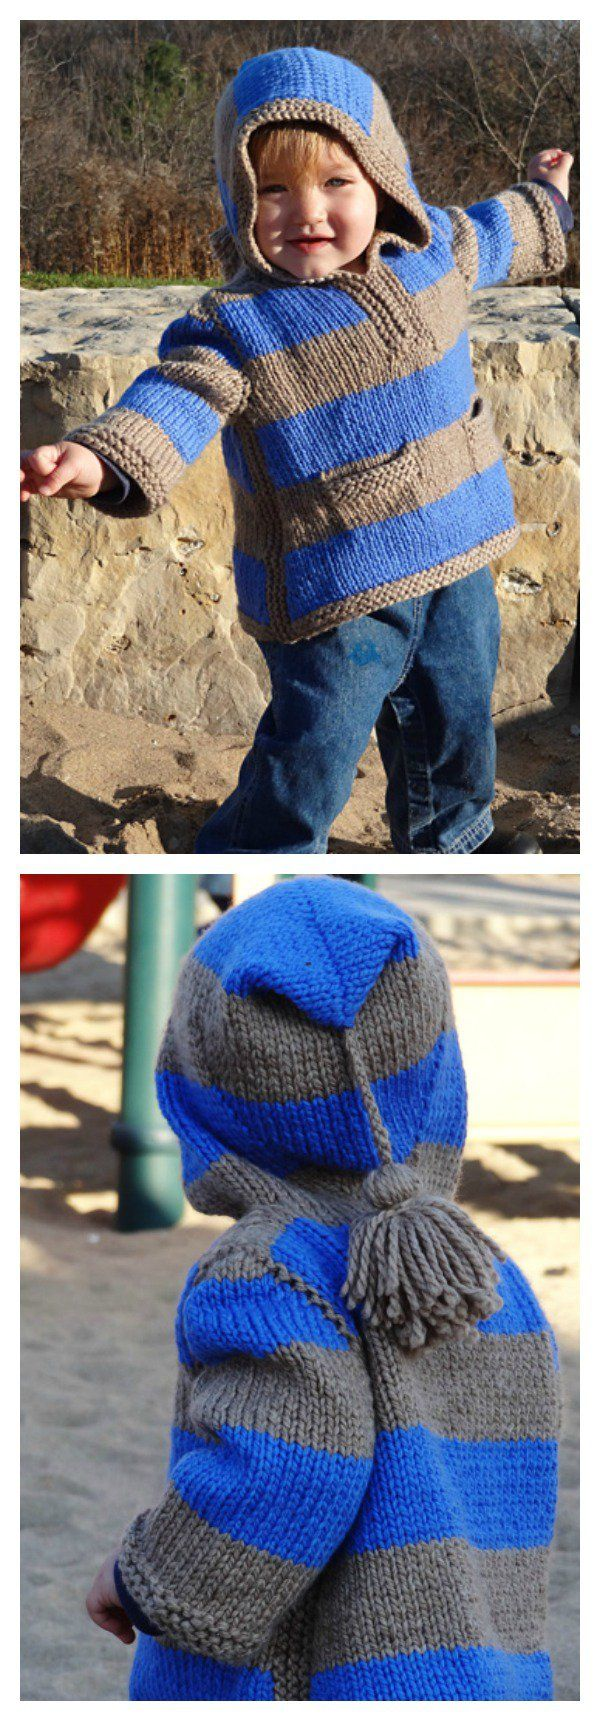 10+ Free Baby Sweater Knitting Patterns | Idaho, Knitting patterns ...